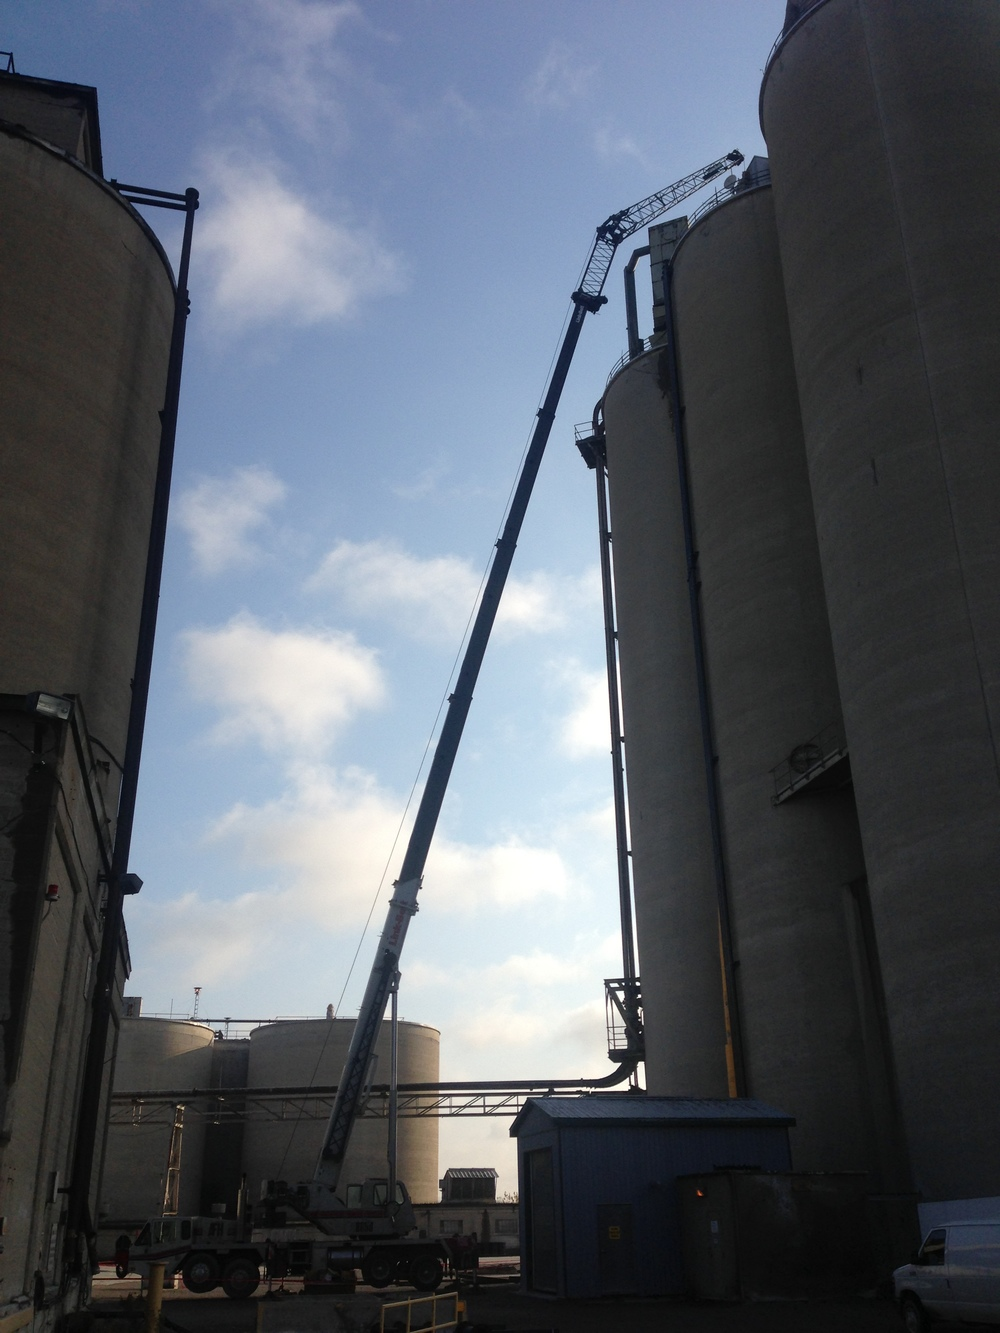 Mobile crane hoisting steel pipe on silo roof on farm